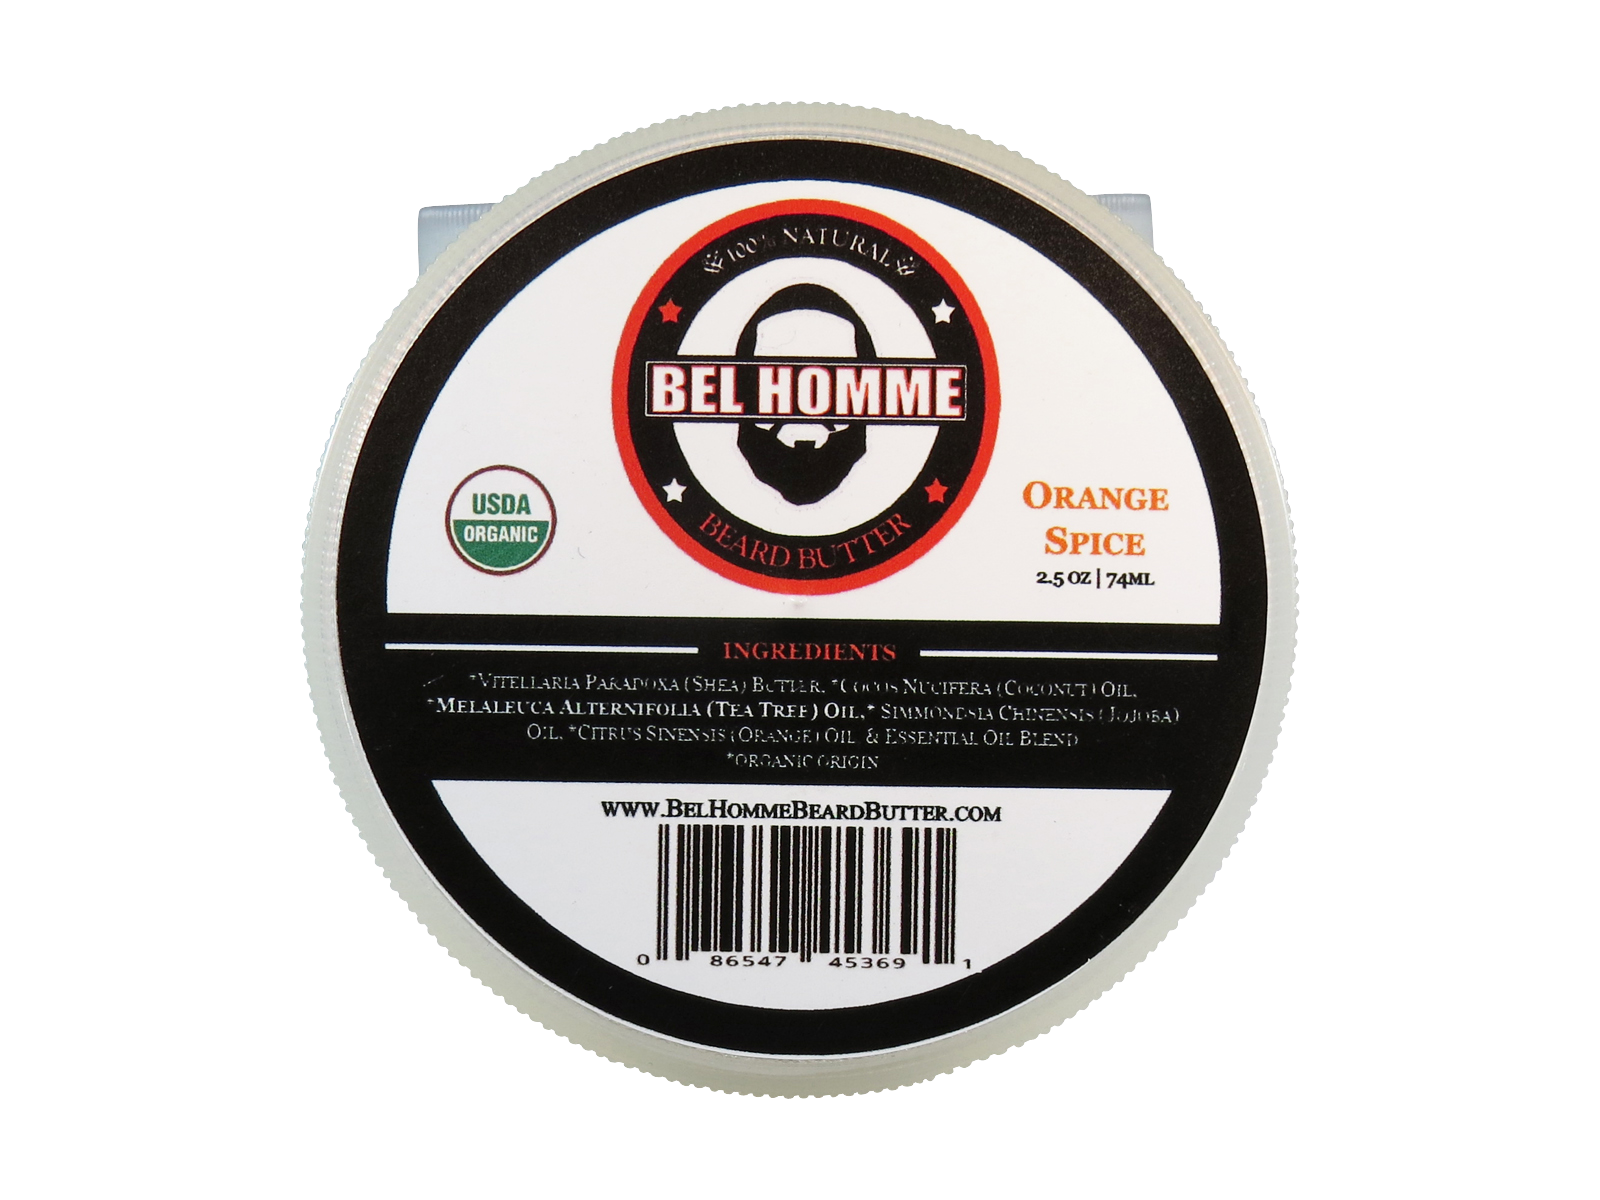 2.5oz Orange Spice Bel Homme Beard Butter.